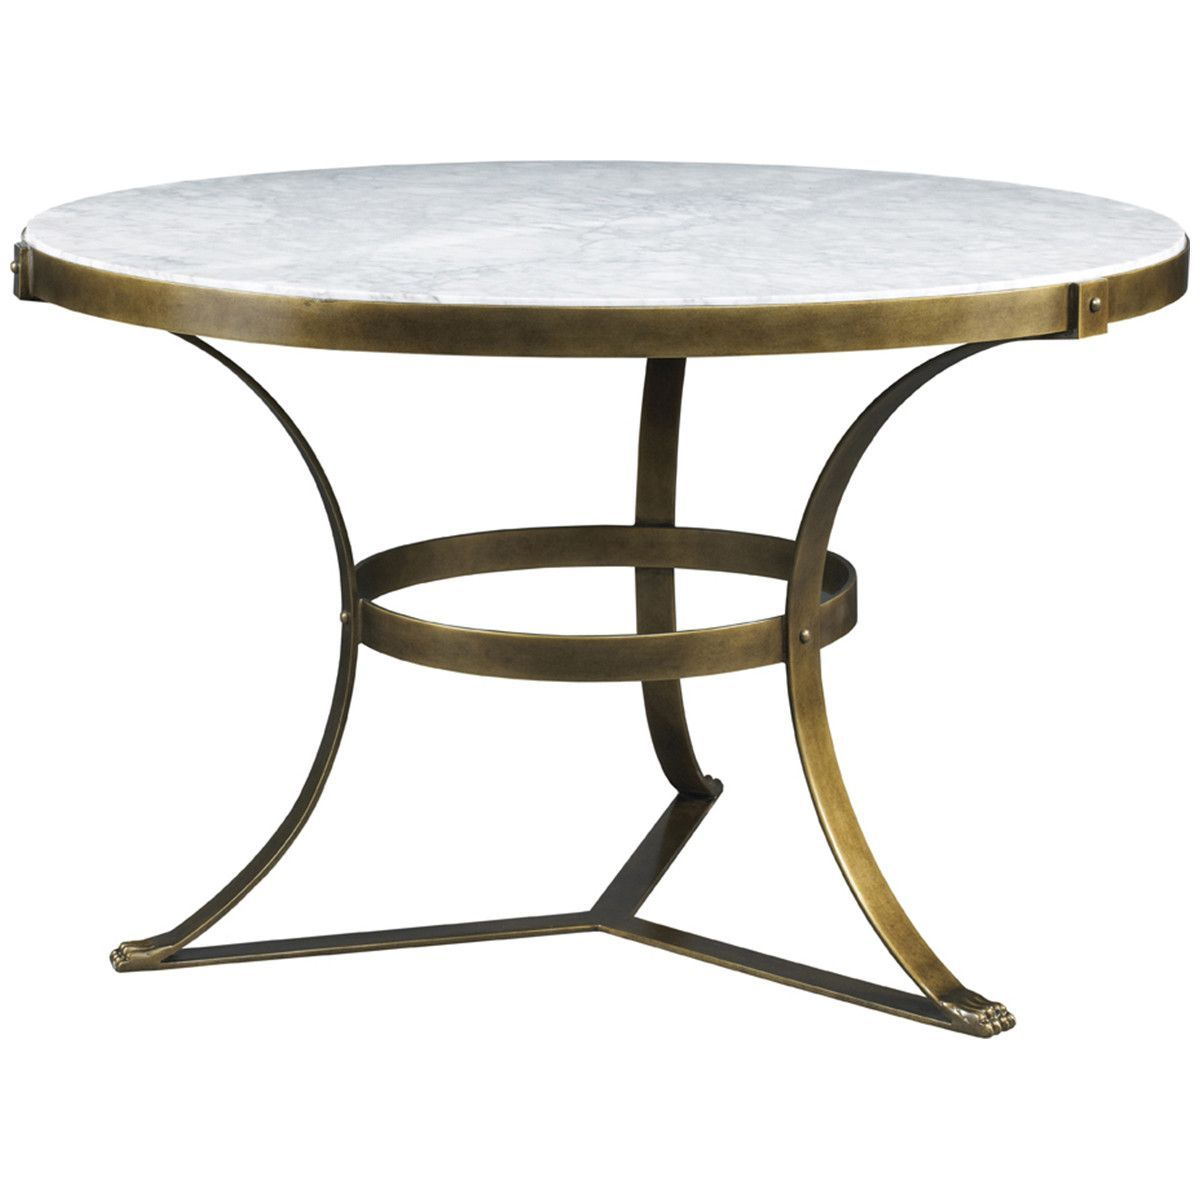 Lillian August Piers Round Center Table Center Table Round